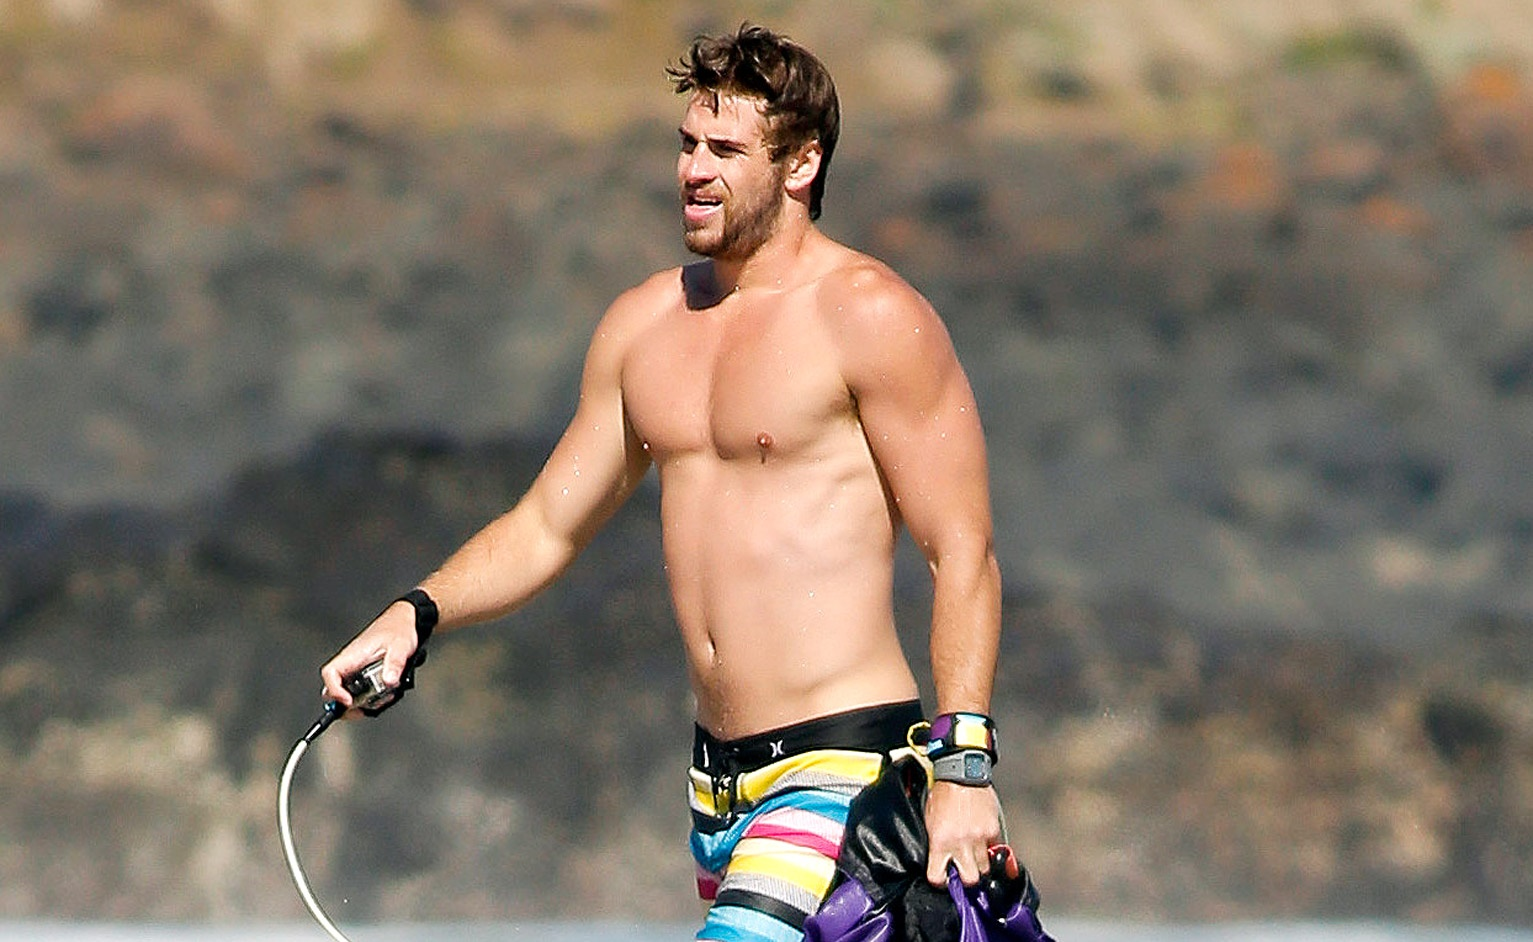 Fotos de chris hemsworth desnudo 70